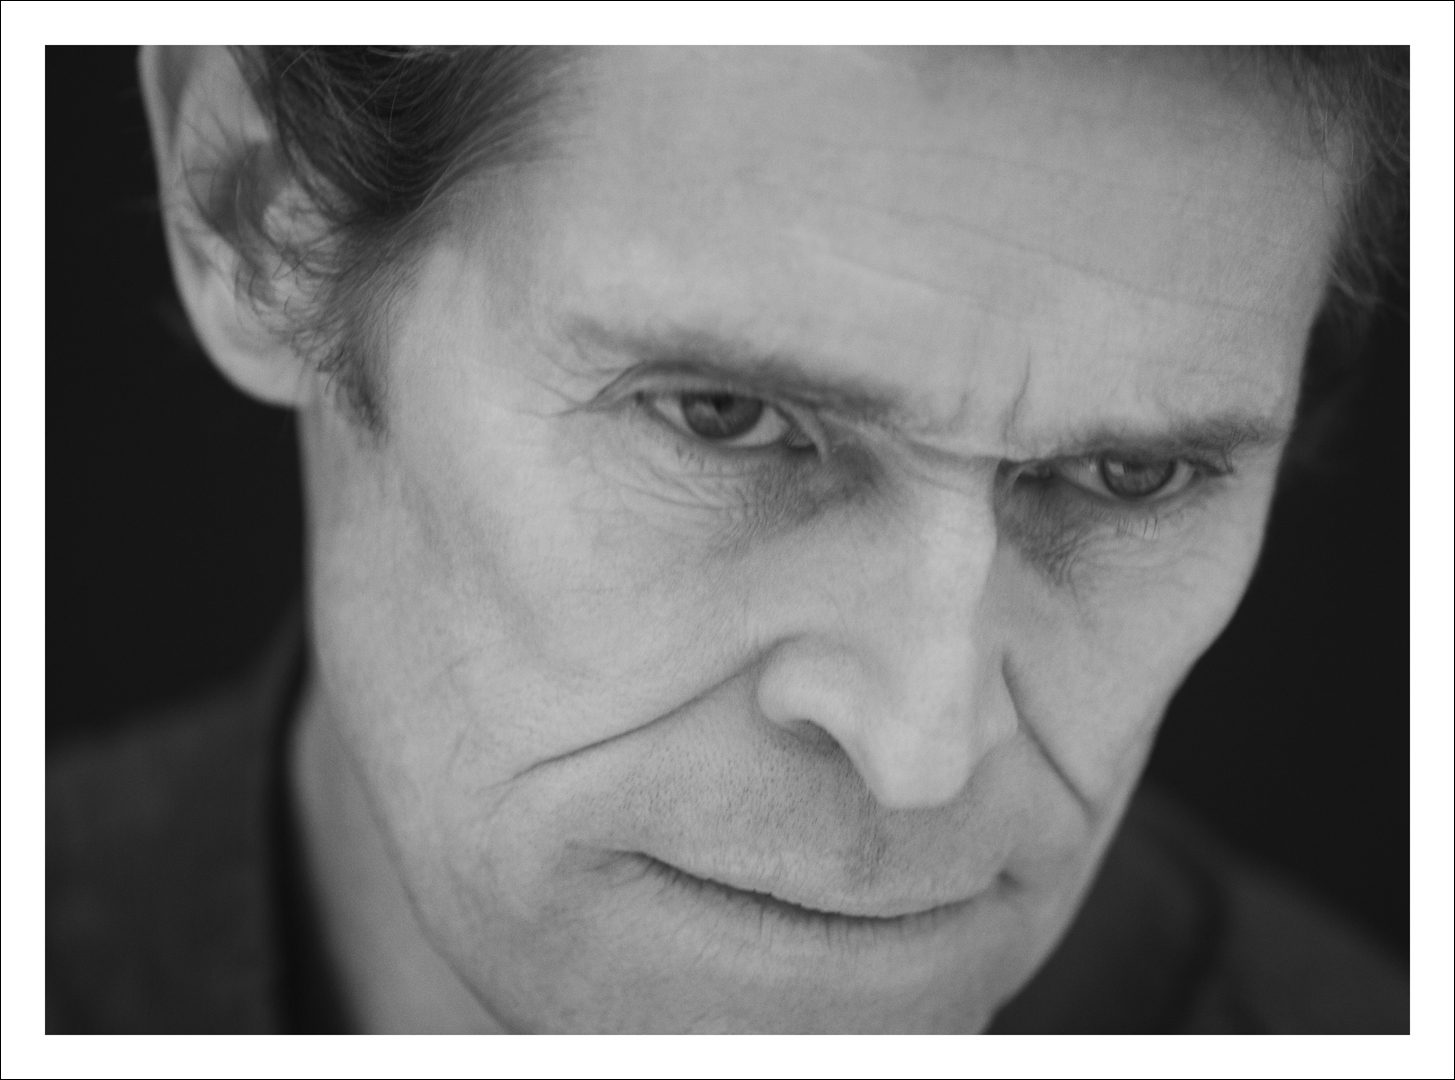 23_TIM_BARBER_WILLEM_DAFOE.jpg